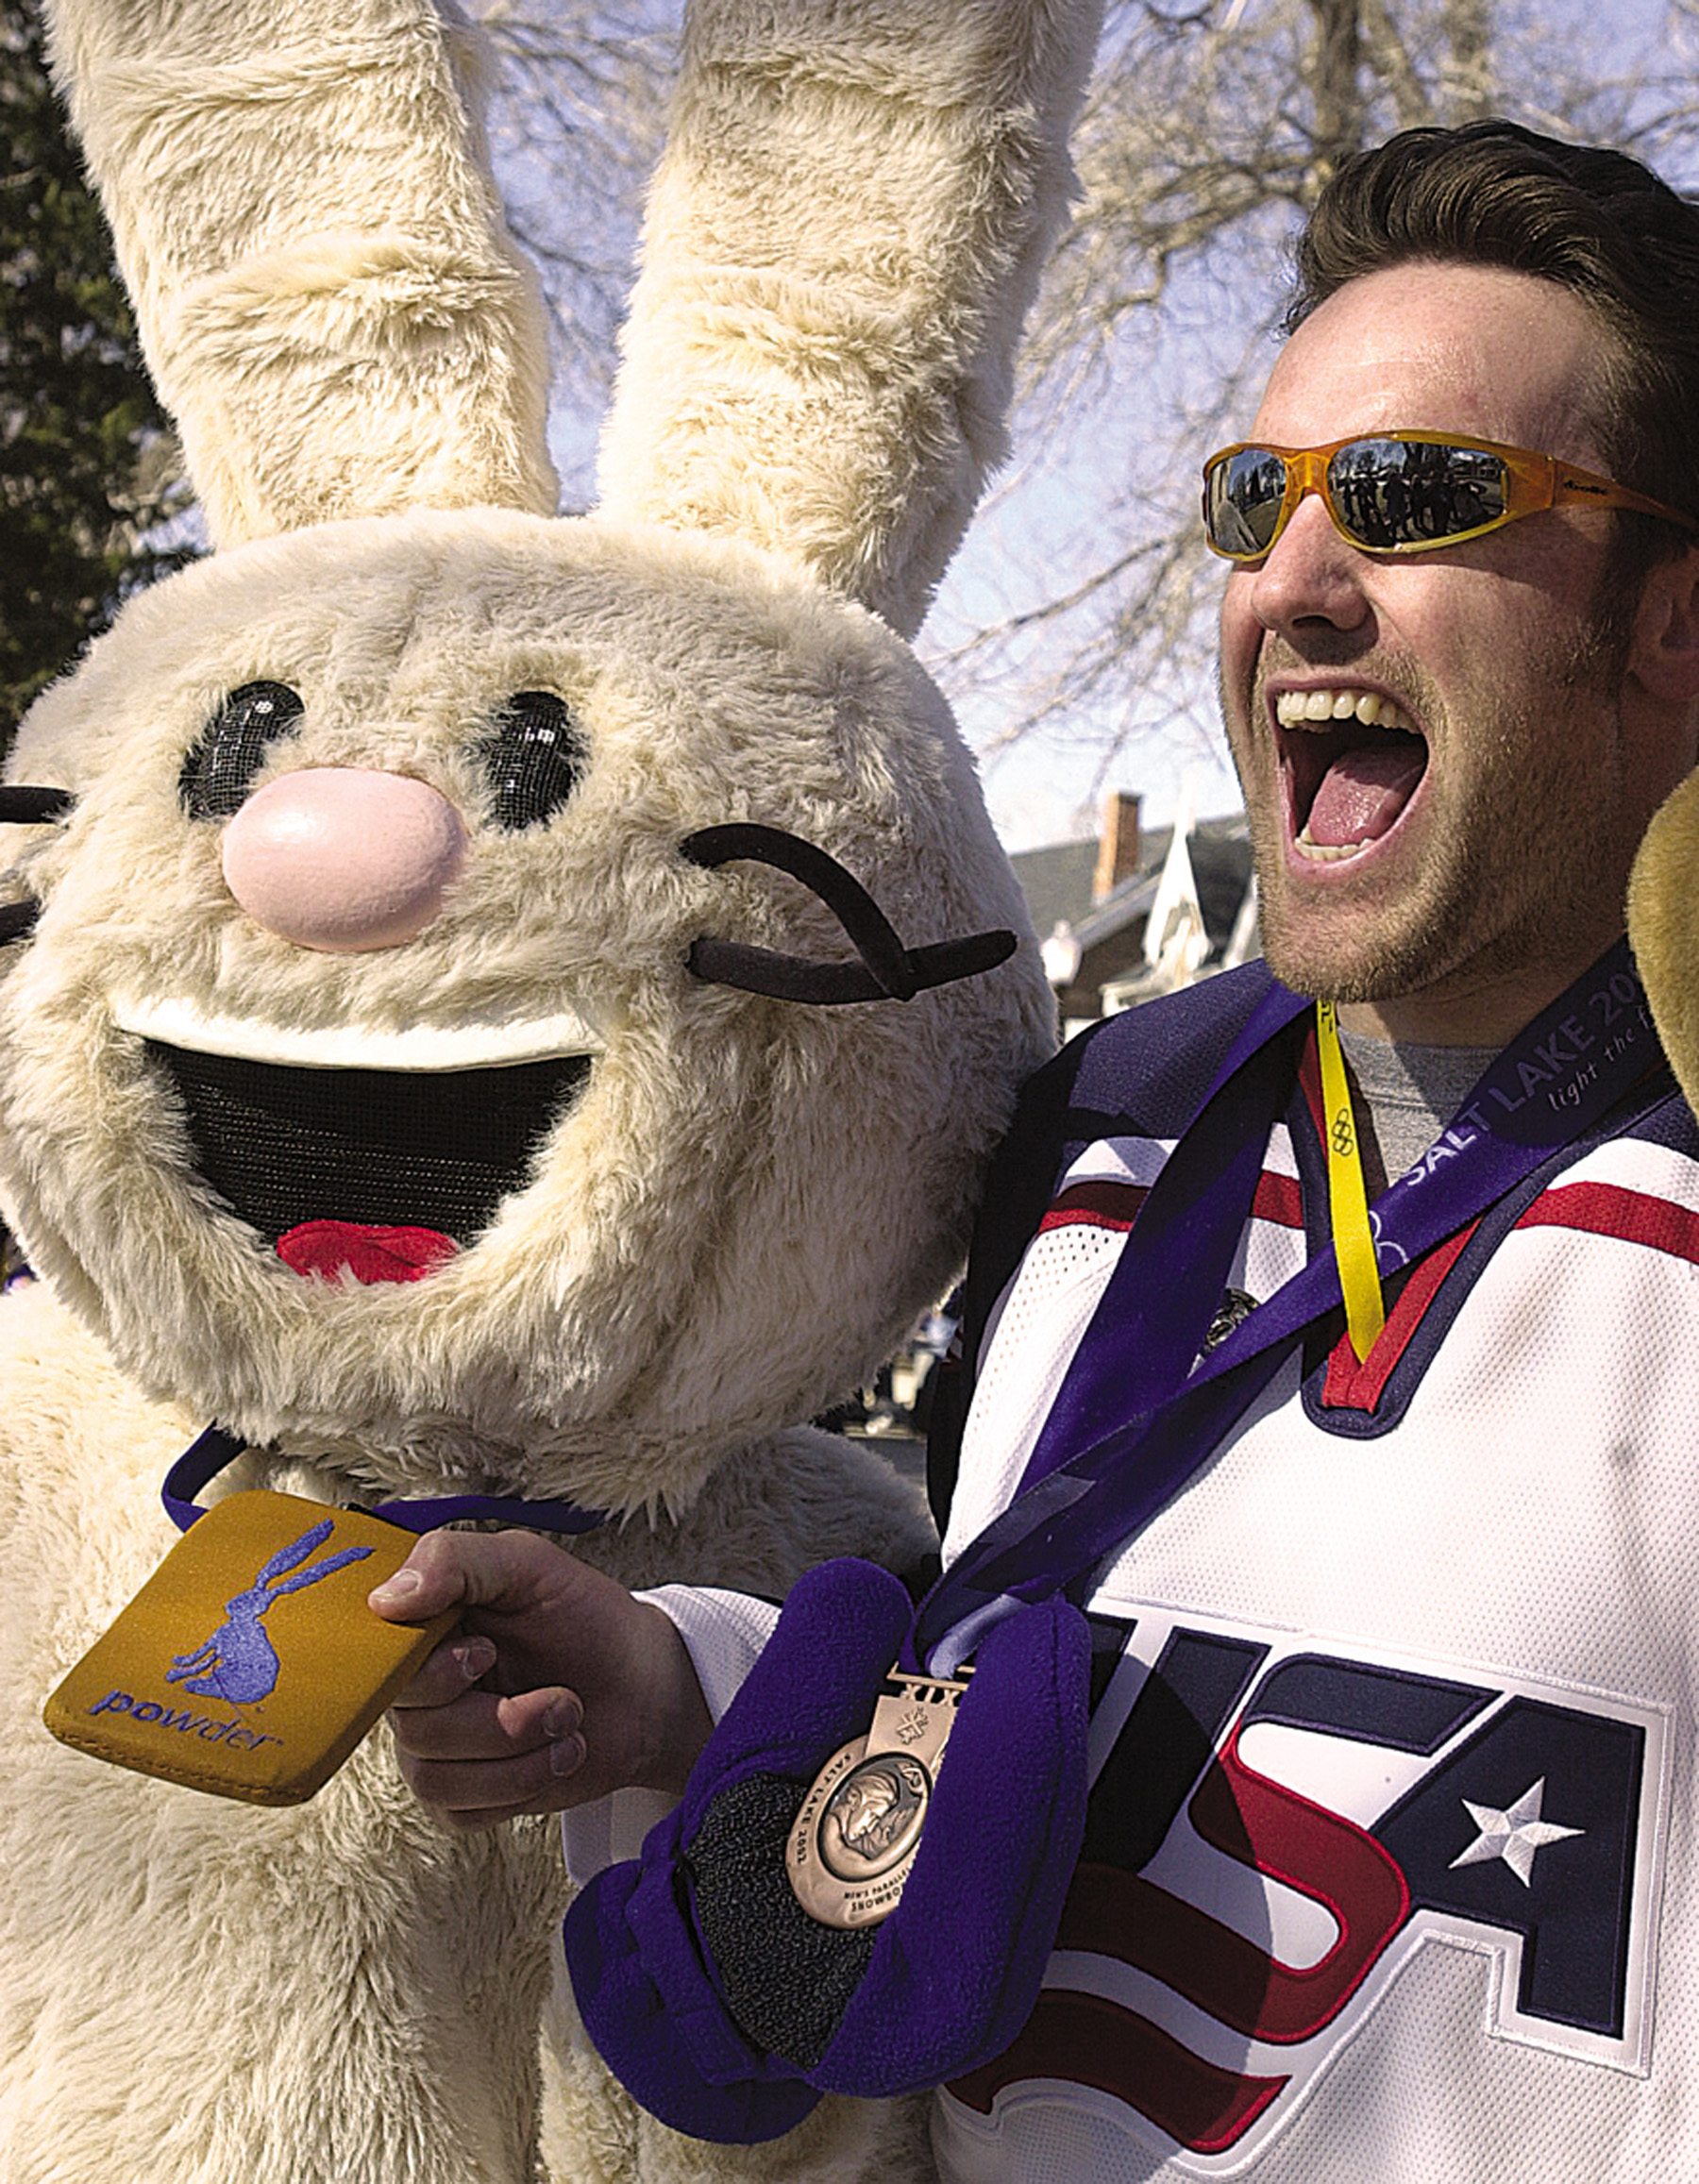 Powder poses with an athlete during a celebration at the Olympic Village.